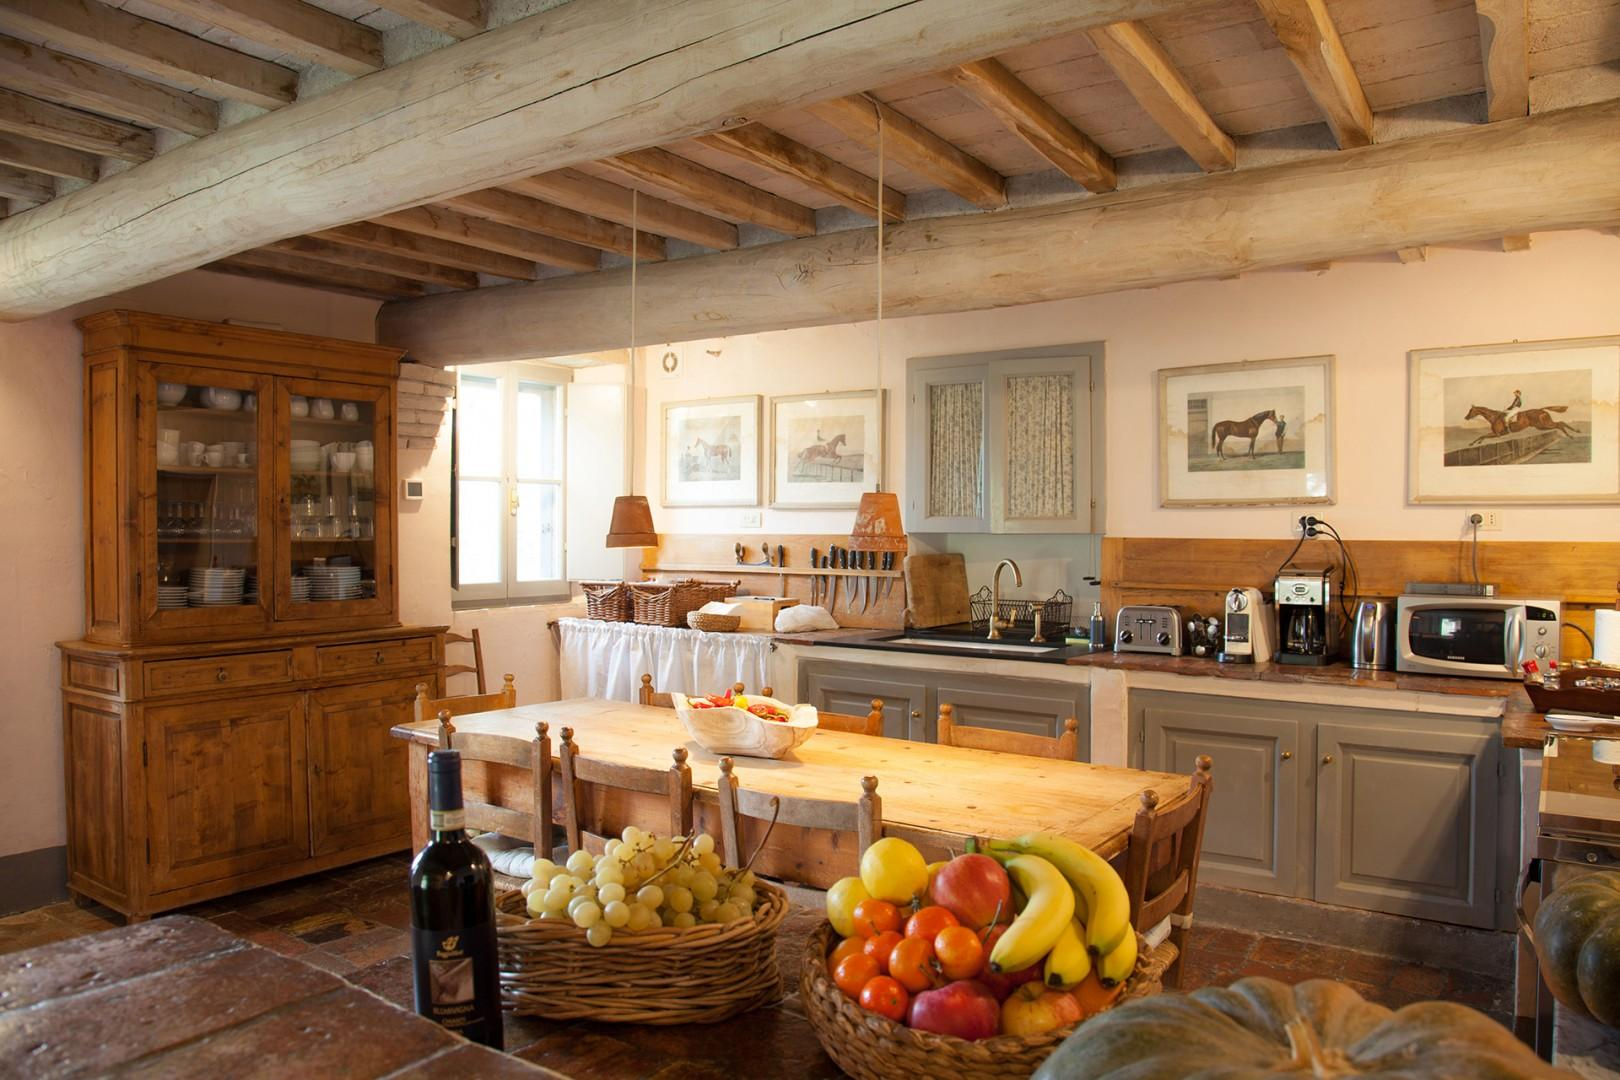 The eat-in kitchen is wonderful. Large and fully furnished, even serious cooks will be happy!